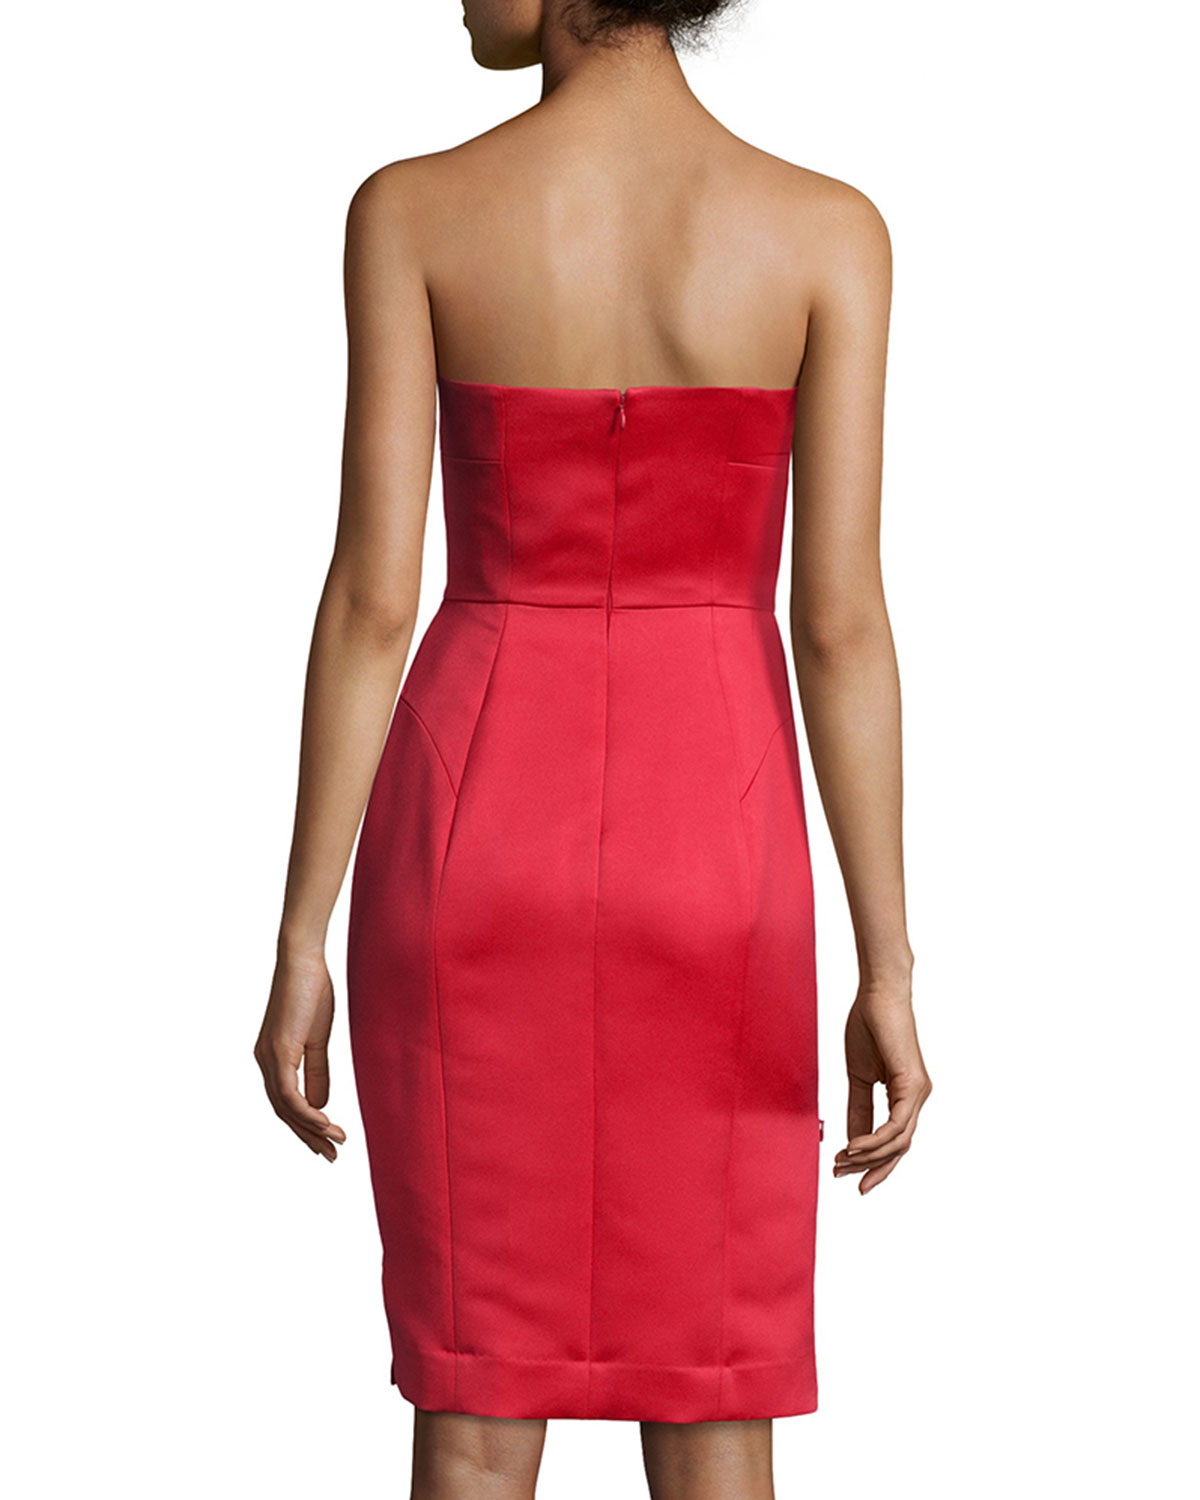 7c2a3086a0f Lyst - MILLY Marta Strapless Duchess Satin Dress in Red